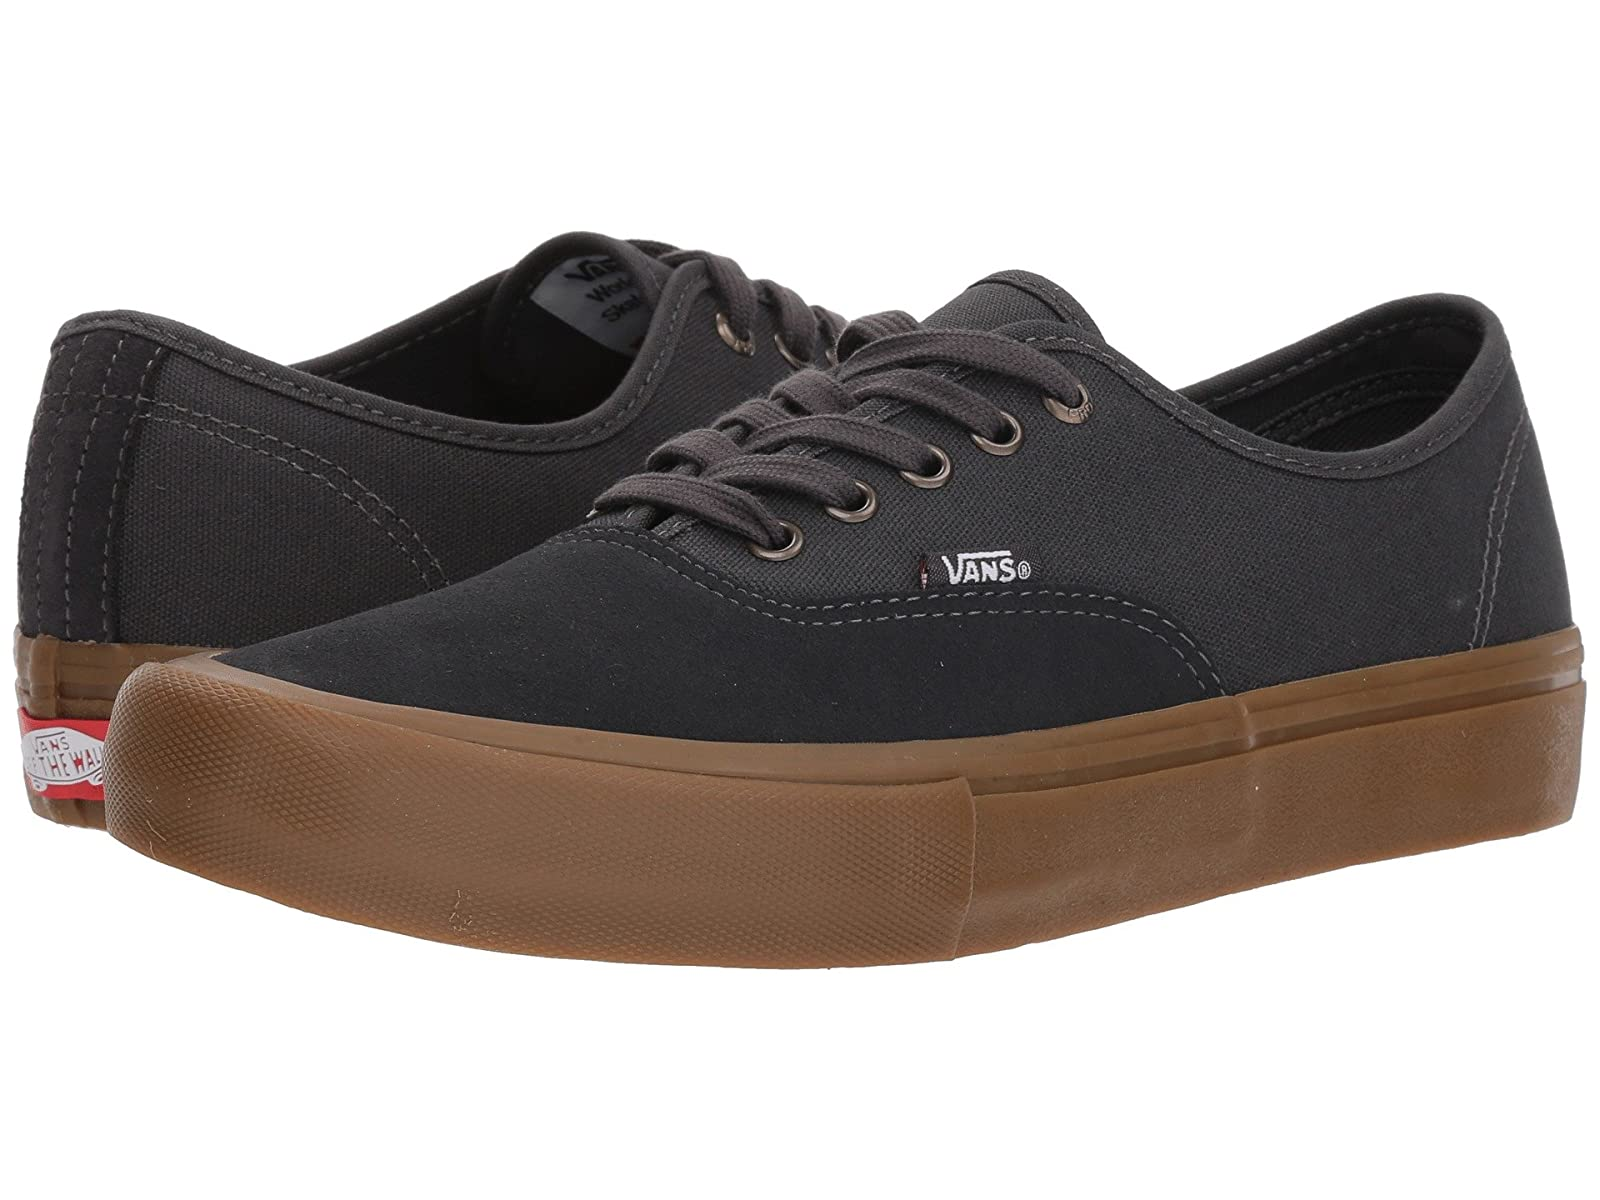 Vans Authentic™ ProAtmospheric grades have affordable shoes